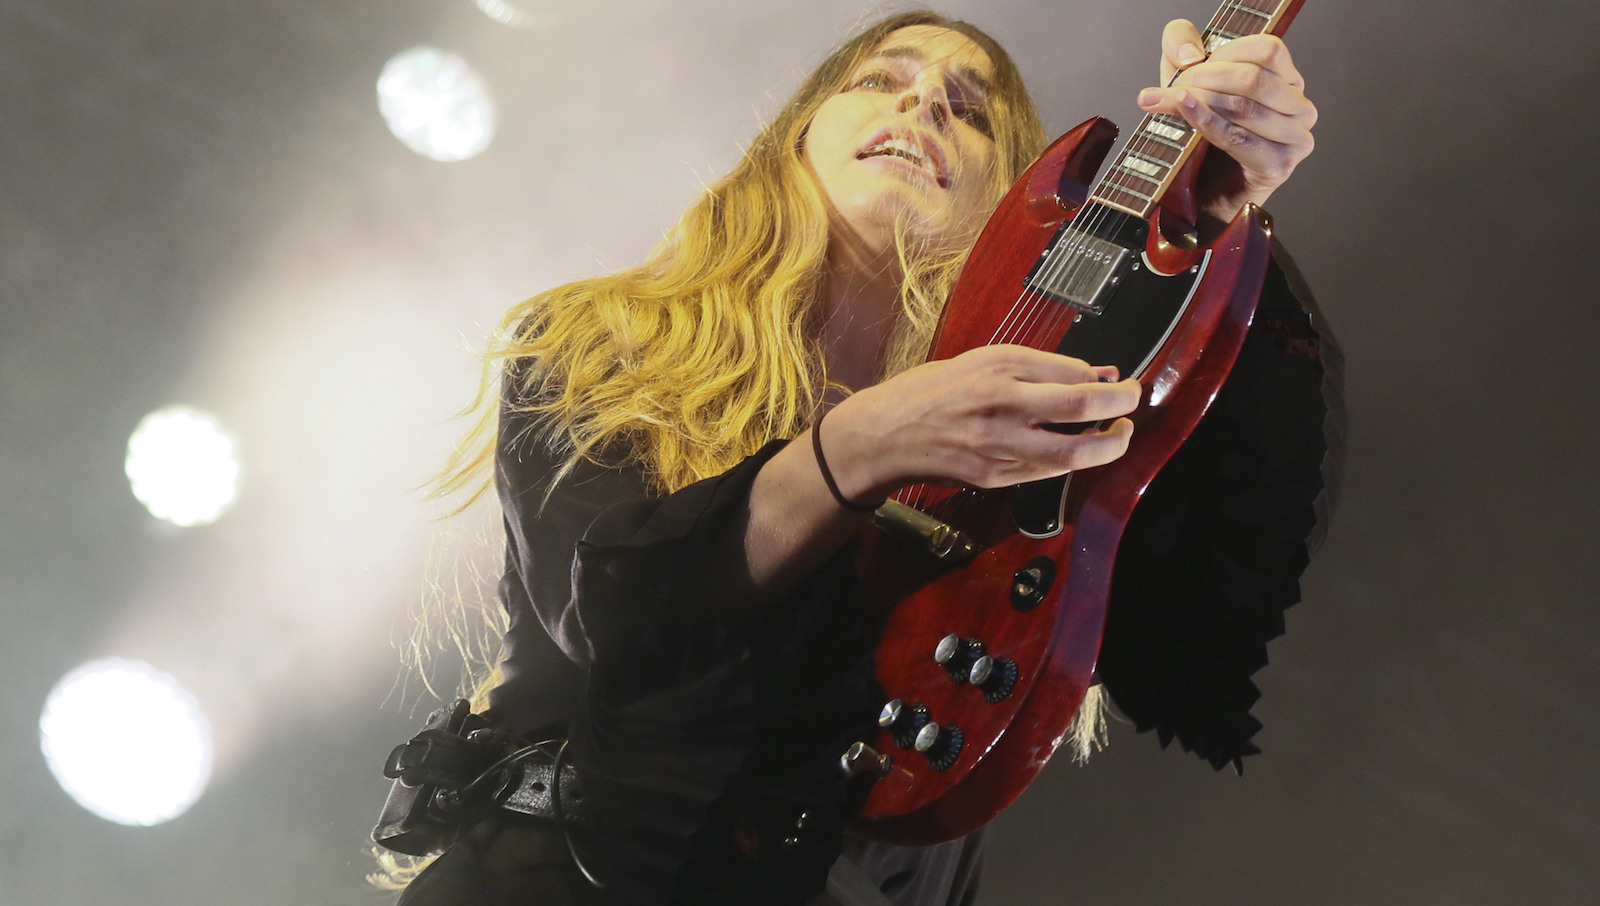 HAIM's Danielle Haim performs on the third day of the Austin City Limits Music Festival on Sunday, Oct. 2, 2016, in Austin, Texas. (Photo by Jack Plunkett/Invision/AP)